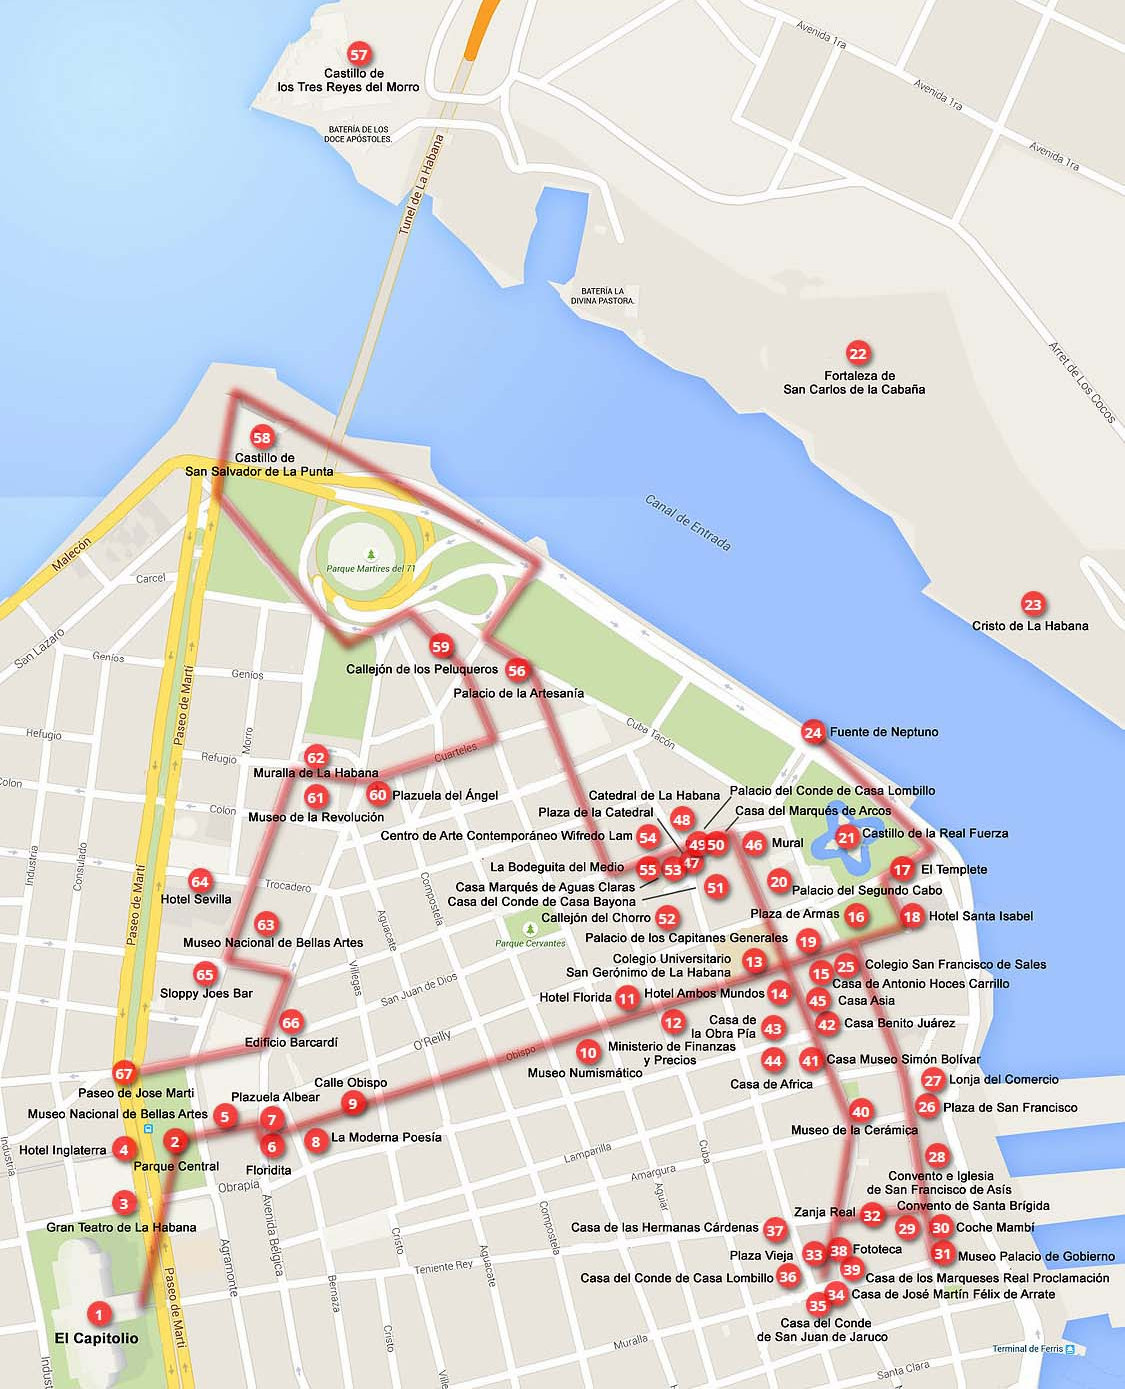 Old Havana Walking Tours MAPSTEXTS PDF Cruise Critic Message